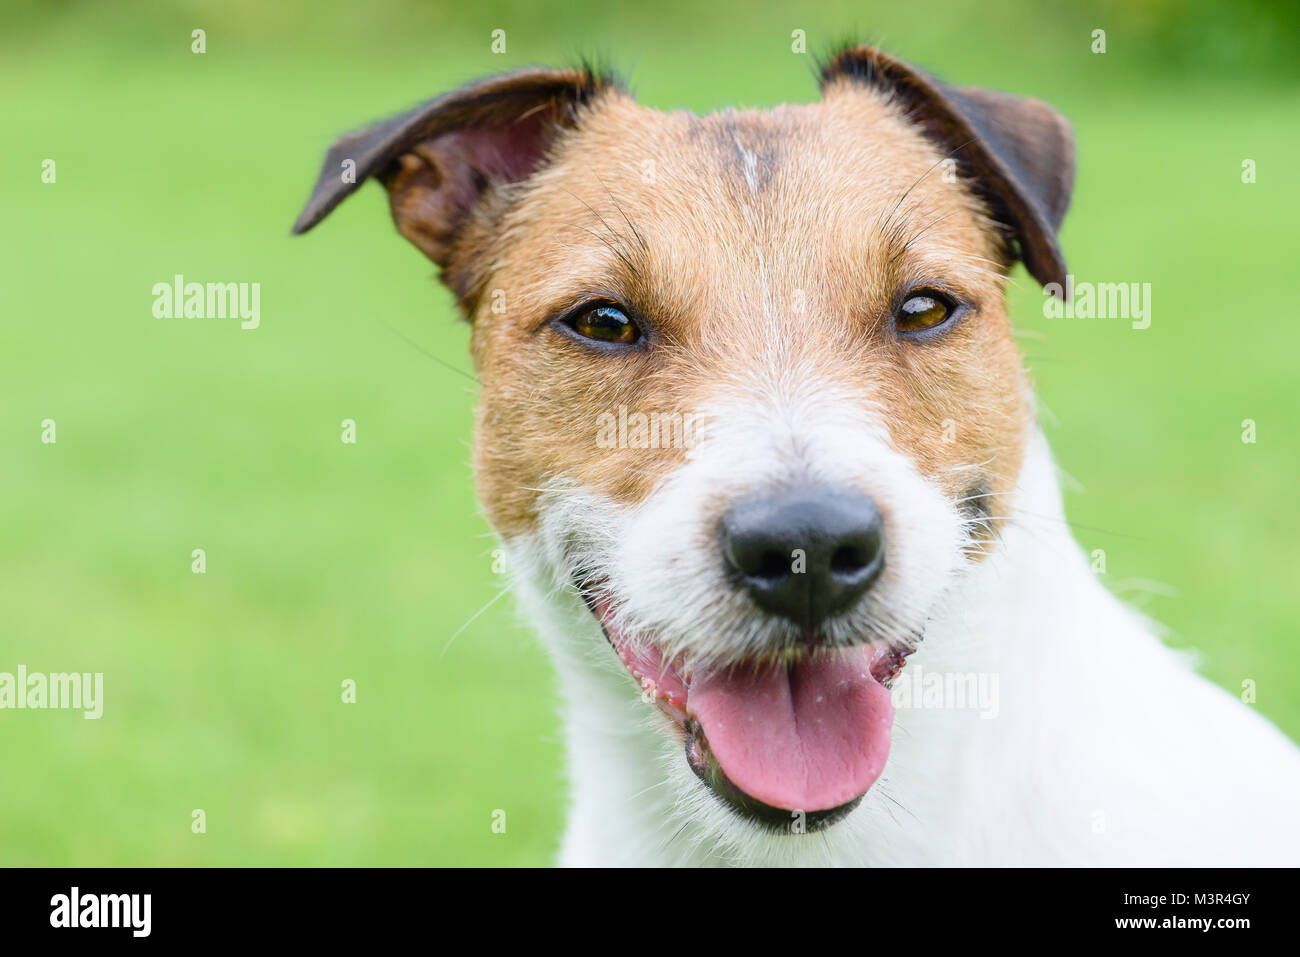 Portrait of happy and contented pet dog with cunning view - Stock Image